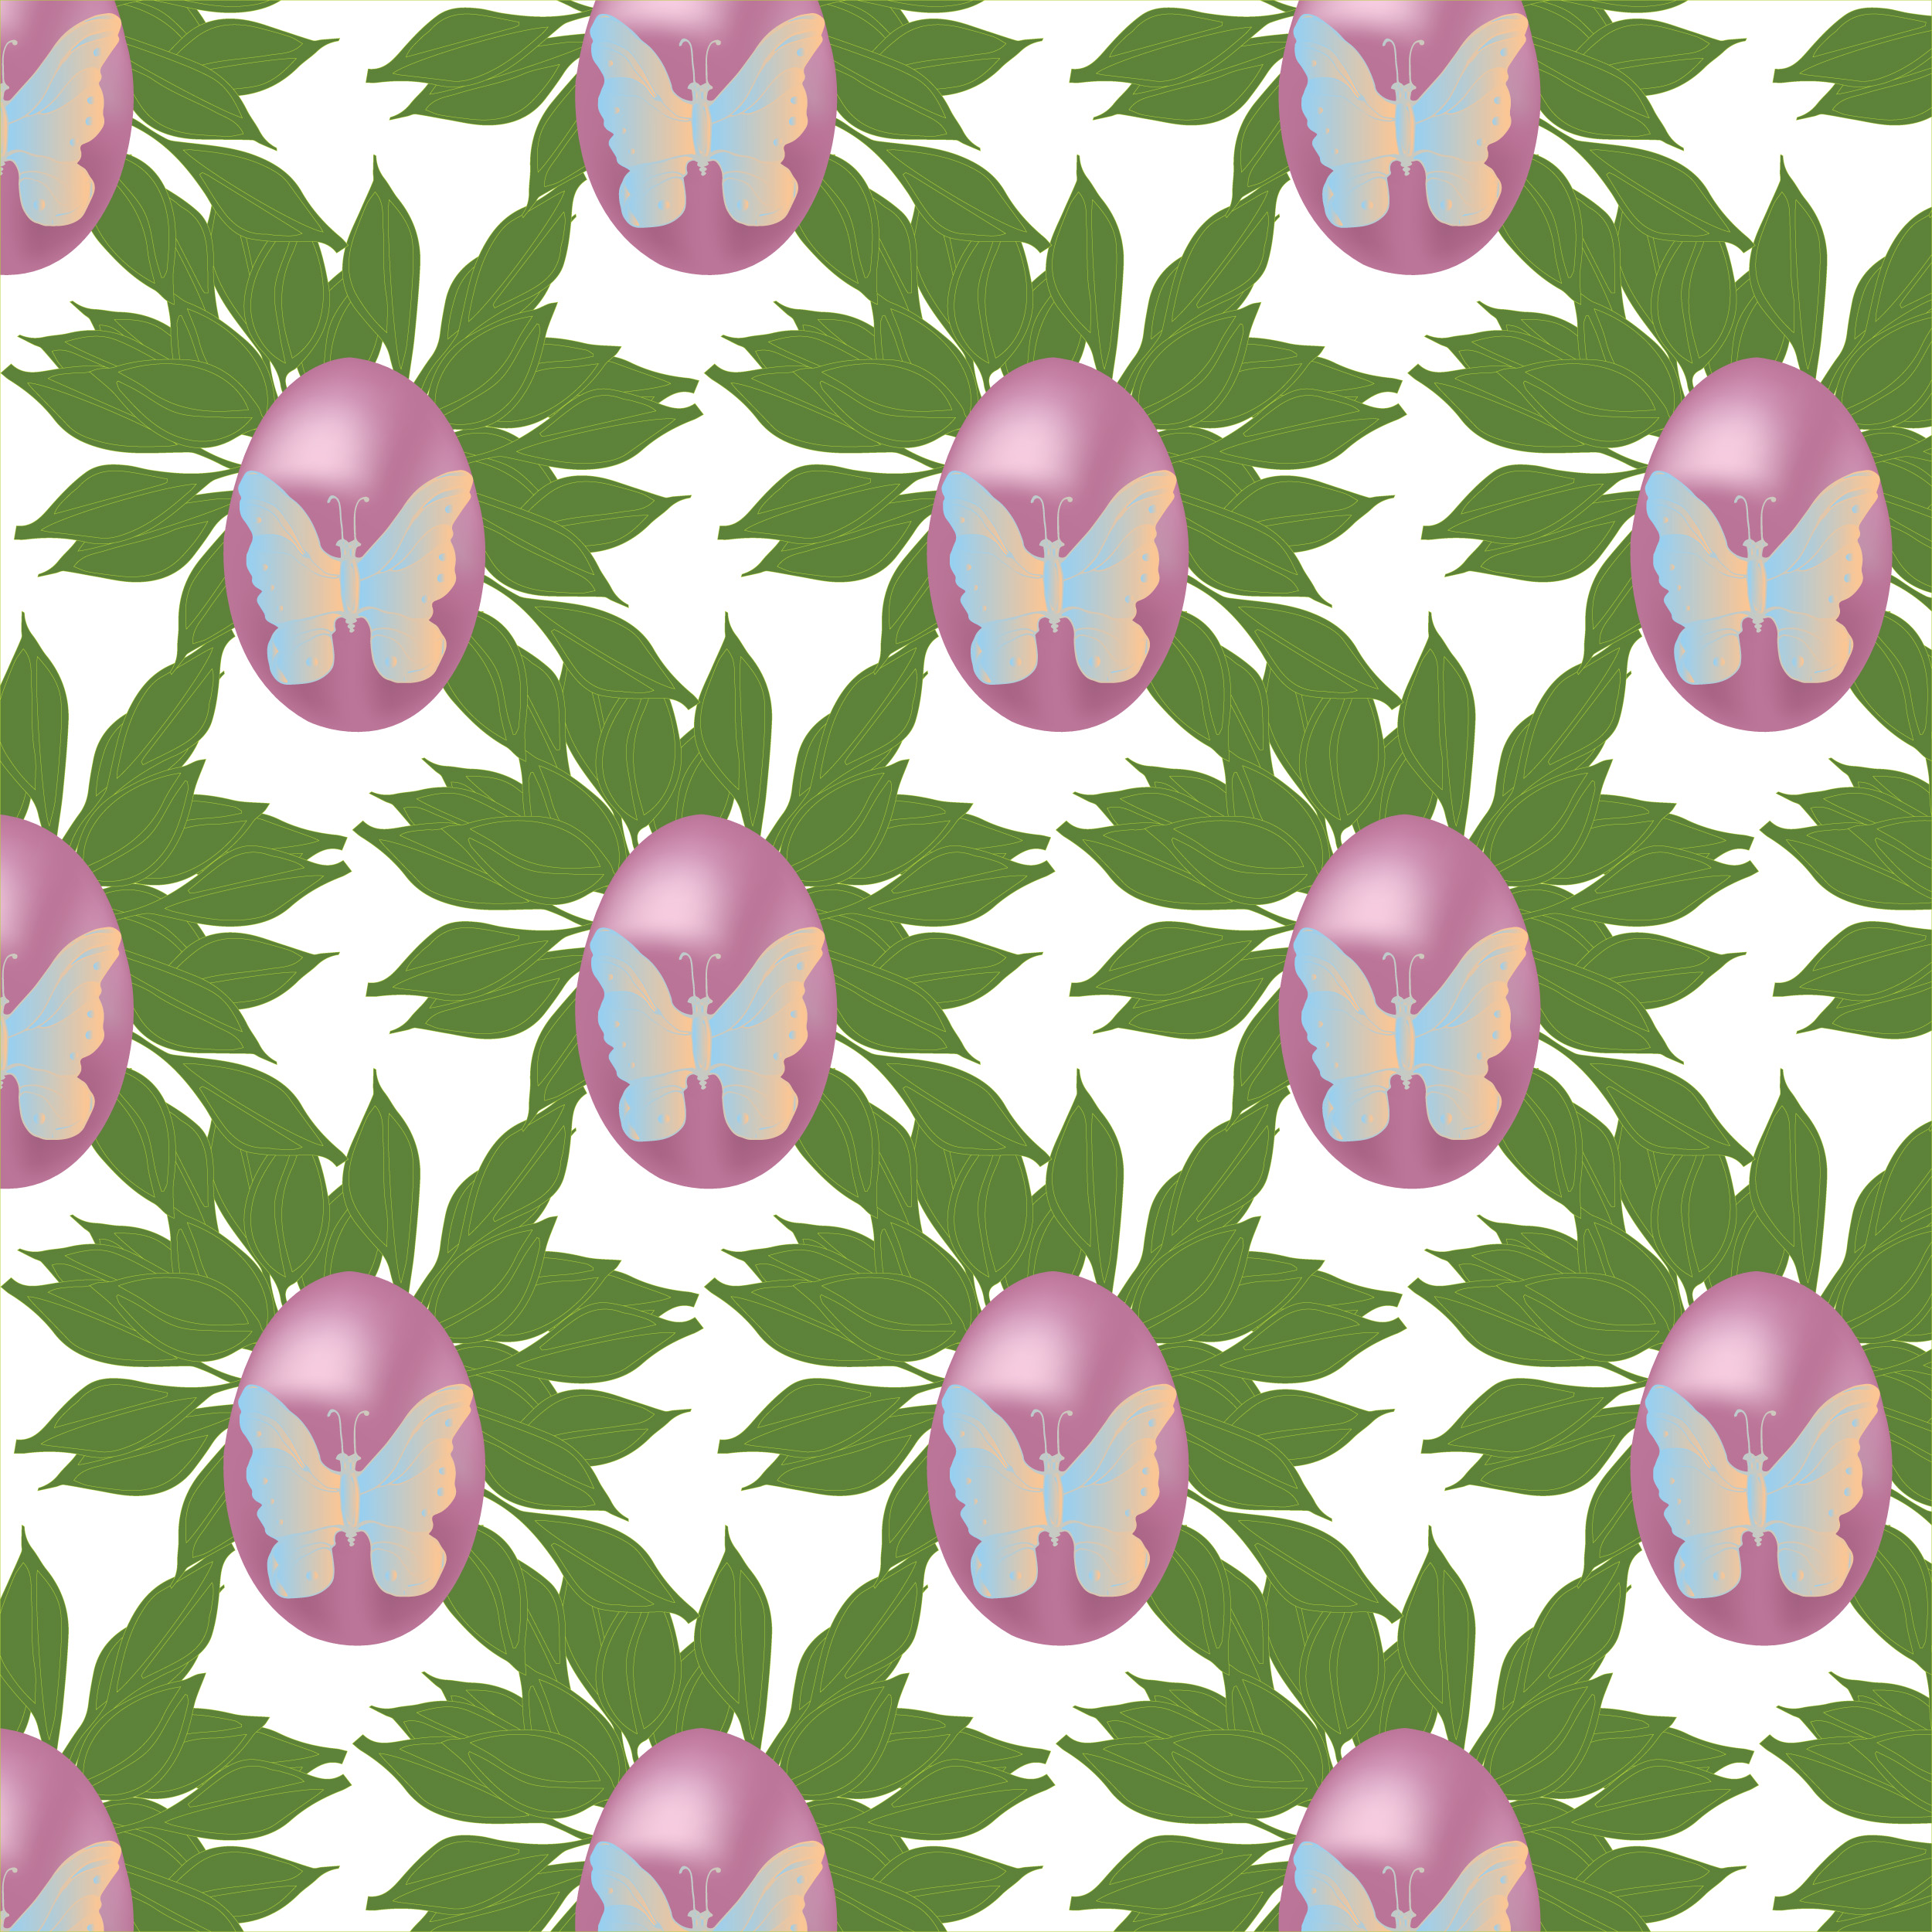 8 Seamless Easter Patterns example image 7